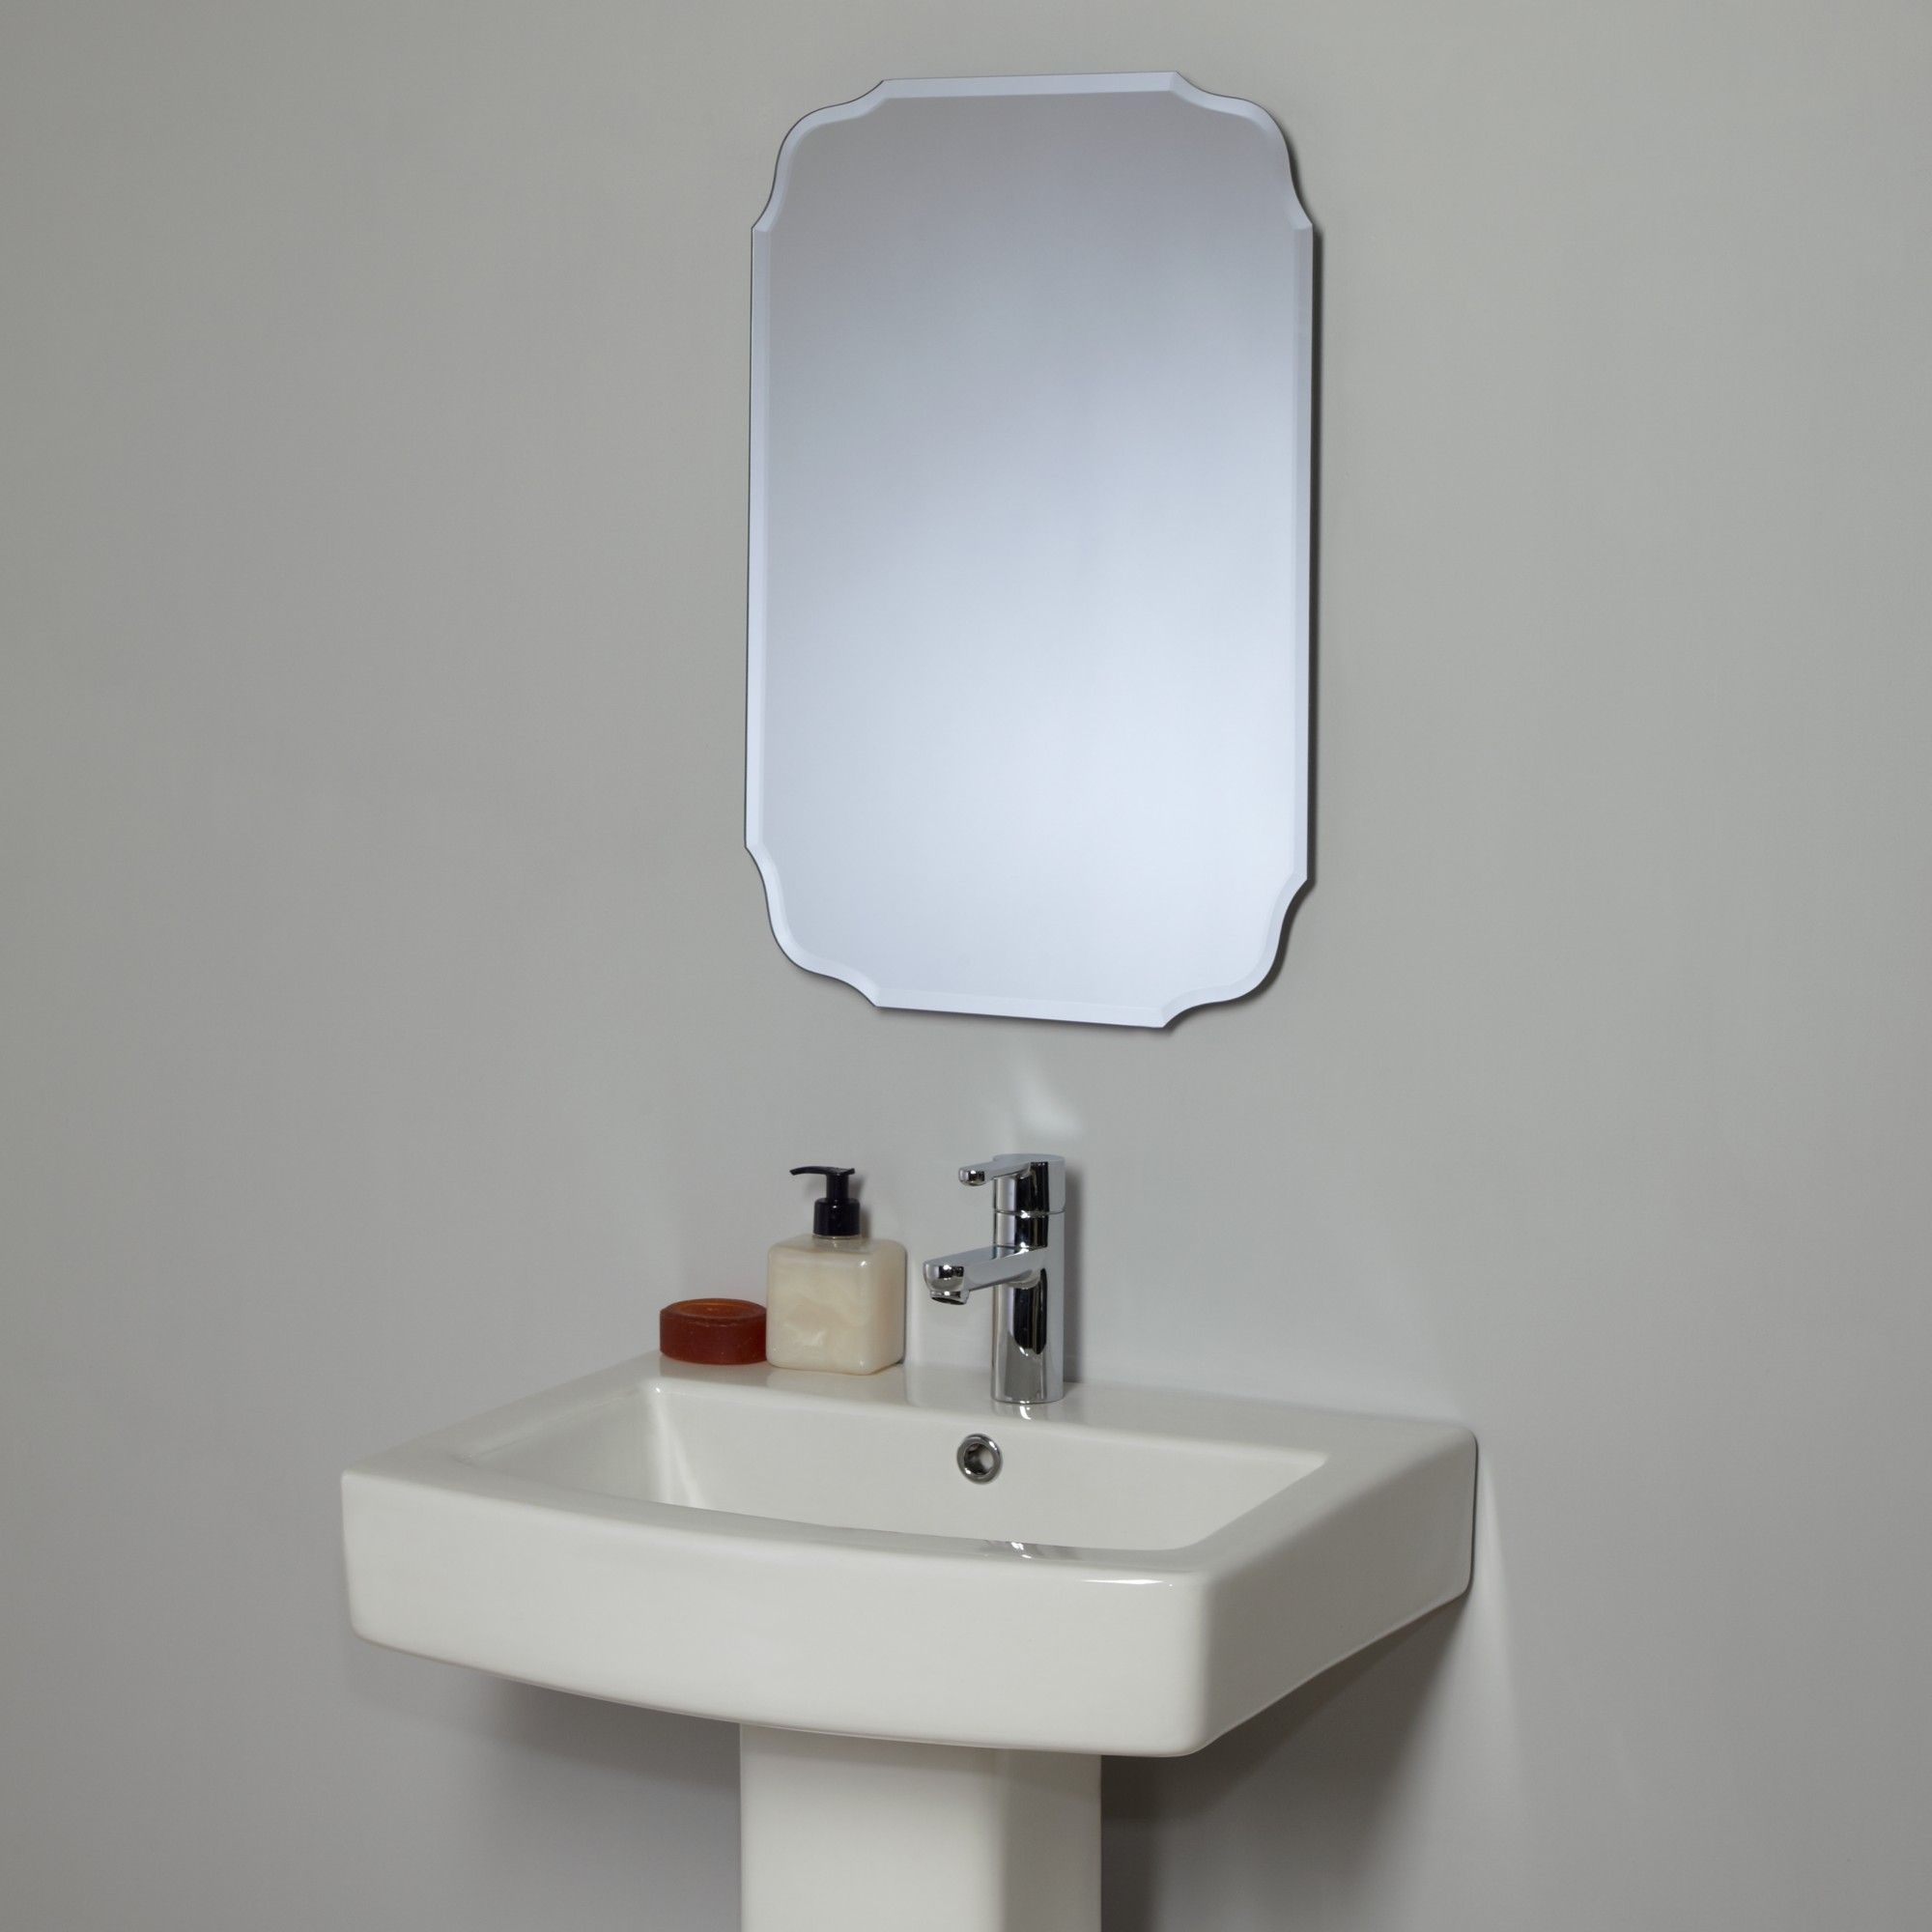 Decorative Bathroom Sinks Vintage Bathroom Wall Mirror John Lewis Wall Mirrors And Bathroom